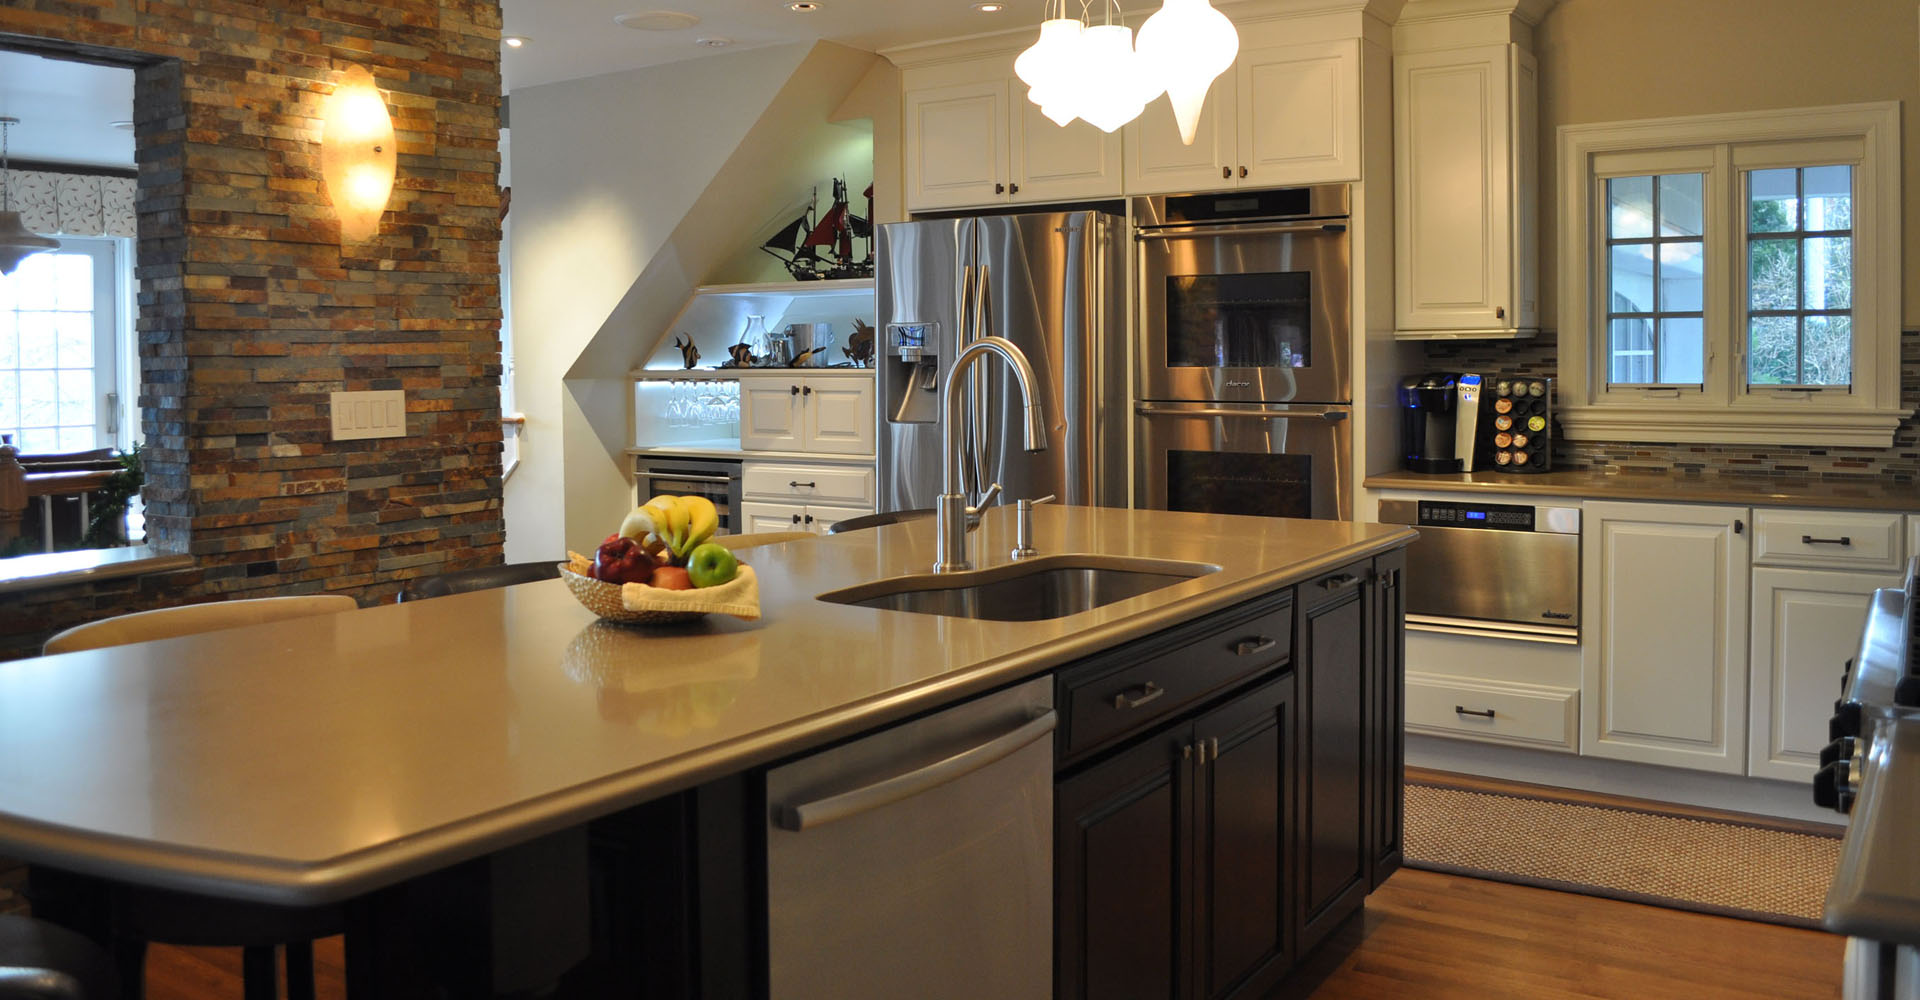 New York Kitchen Remodeling Adc Group Inc The Complete Building Solution